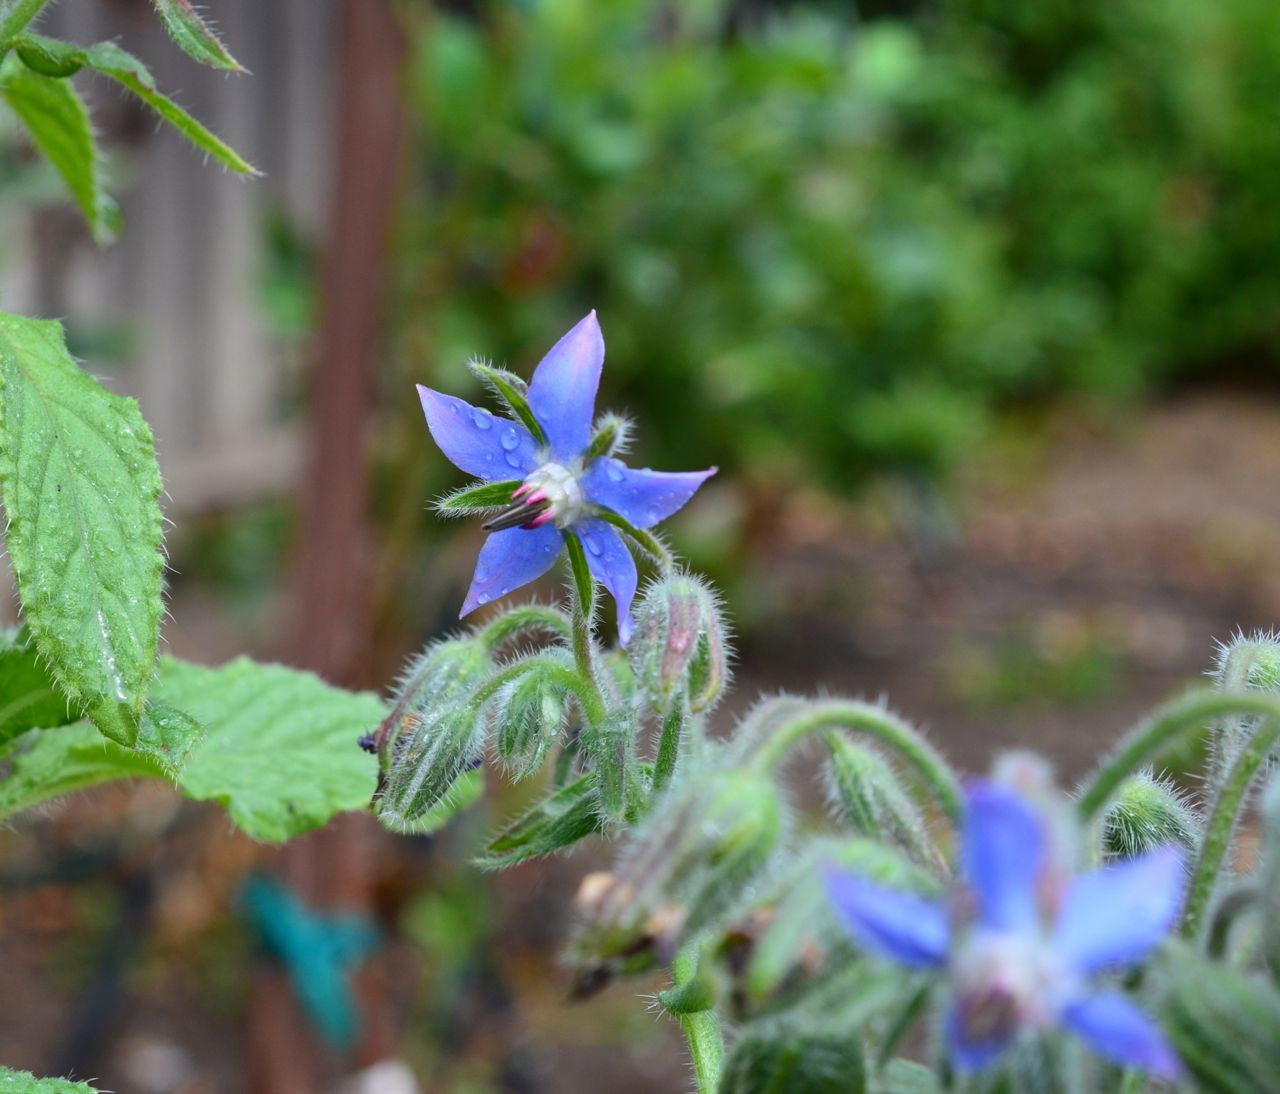 Borage plant growing in my backyard